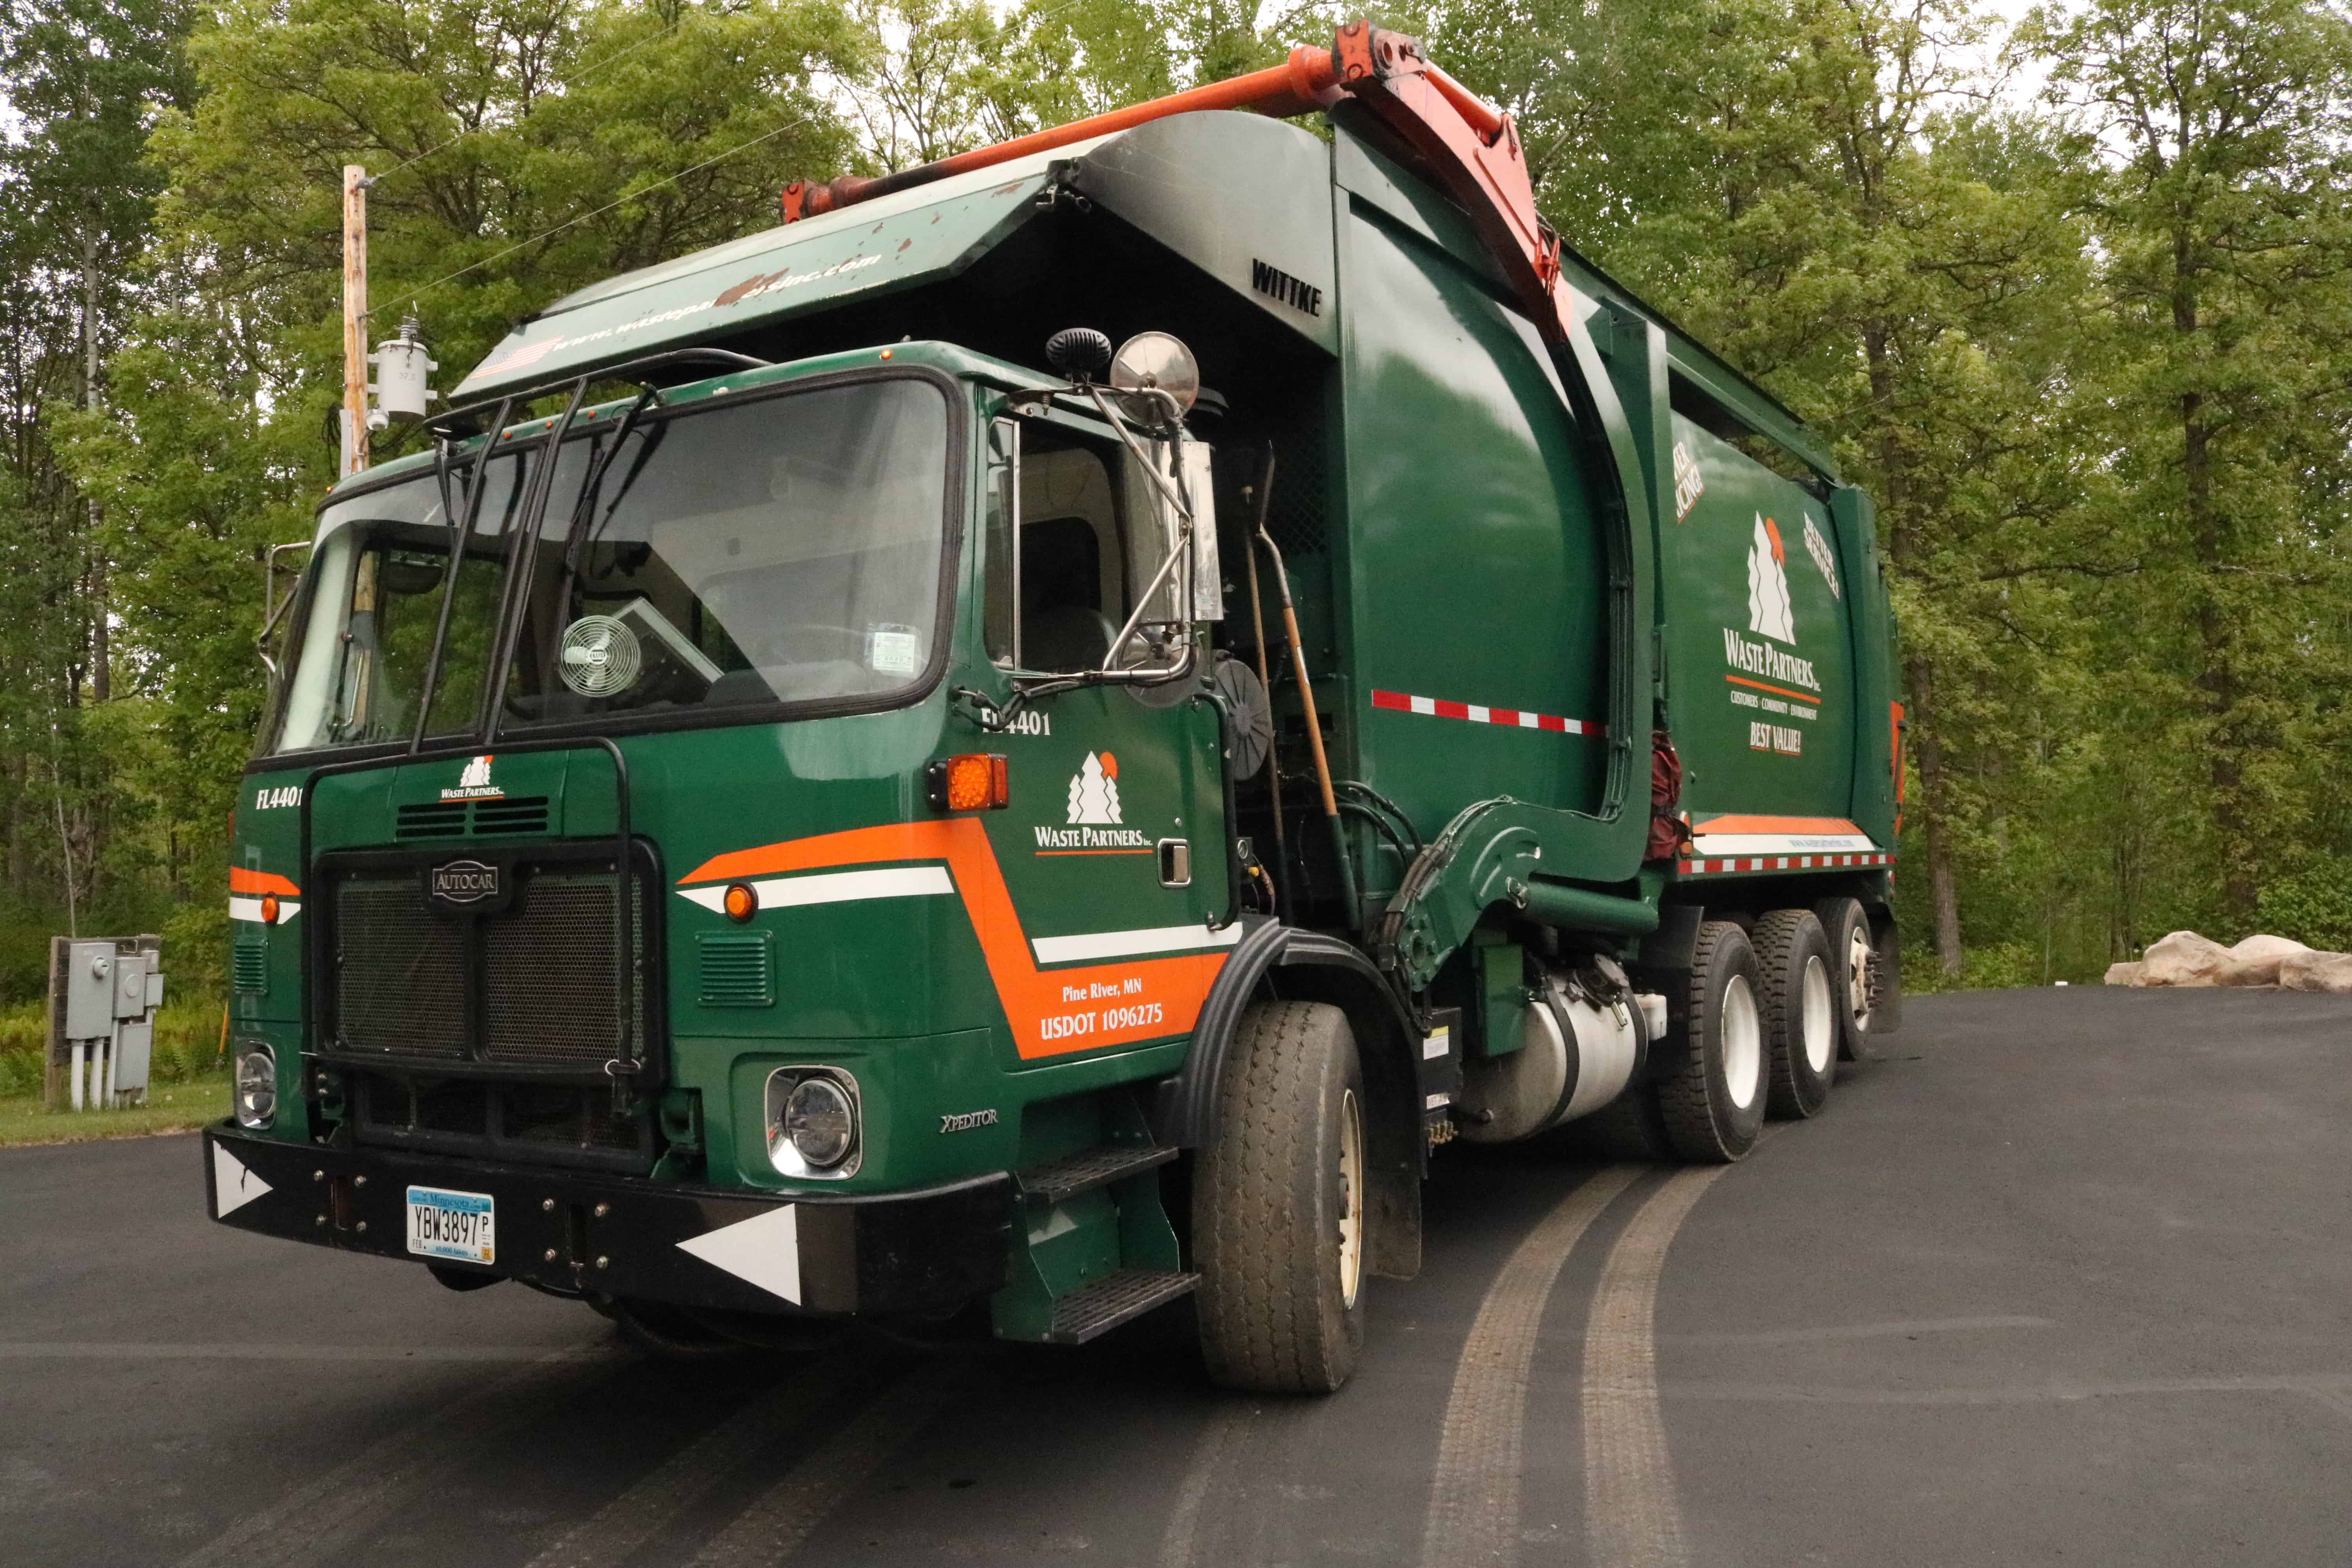 Request Services for Residential Recycling Truck Waste Partners